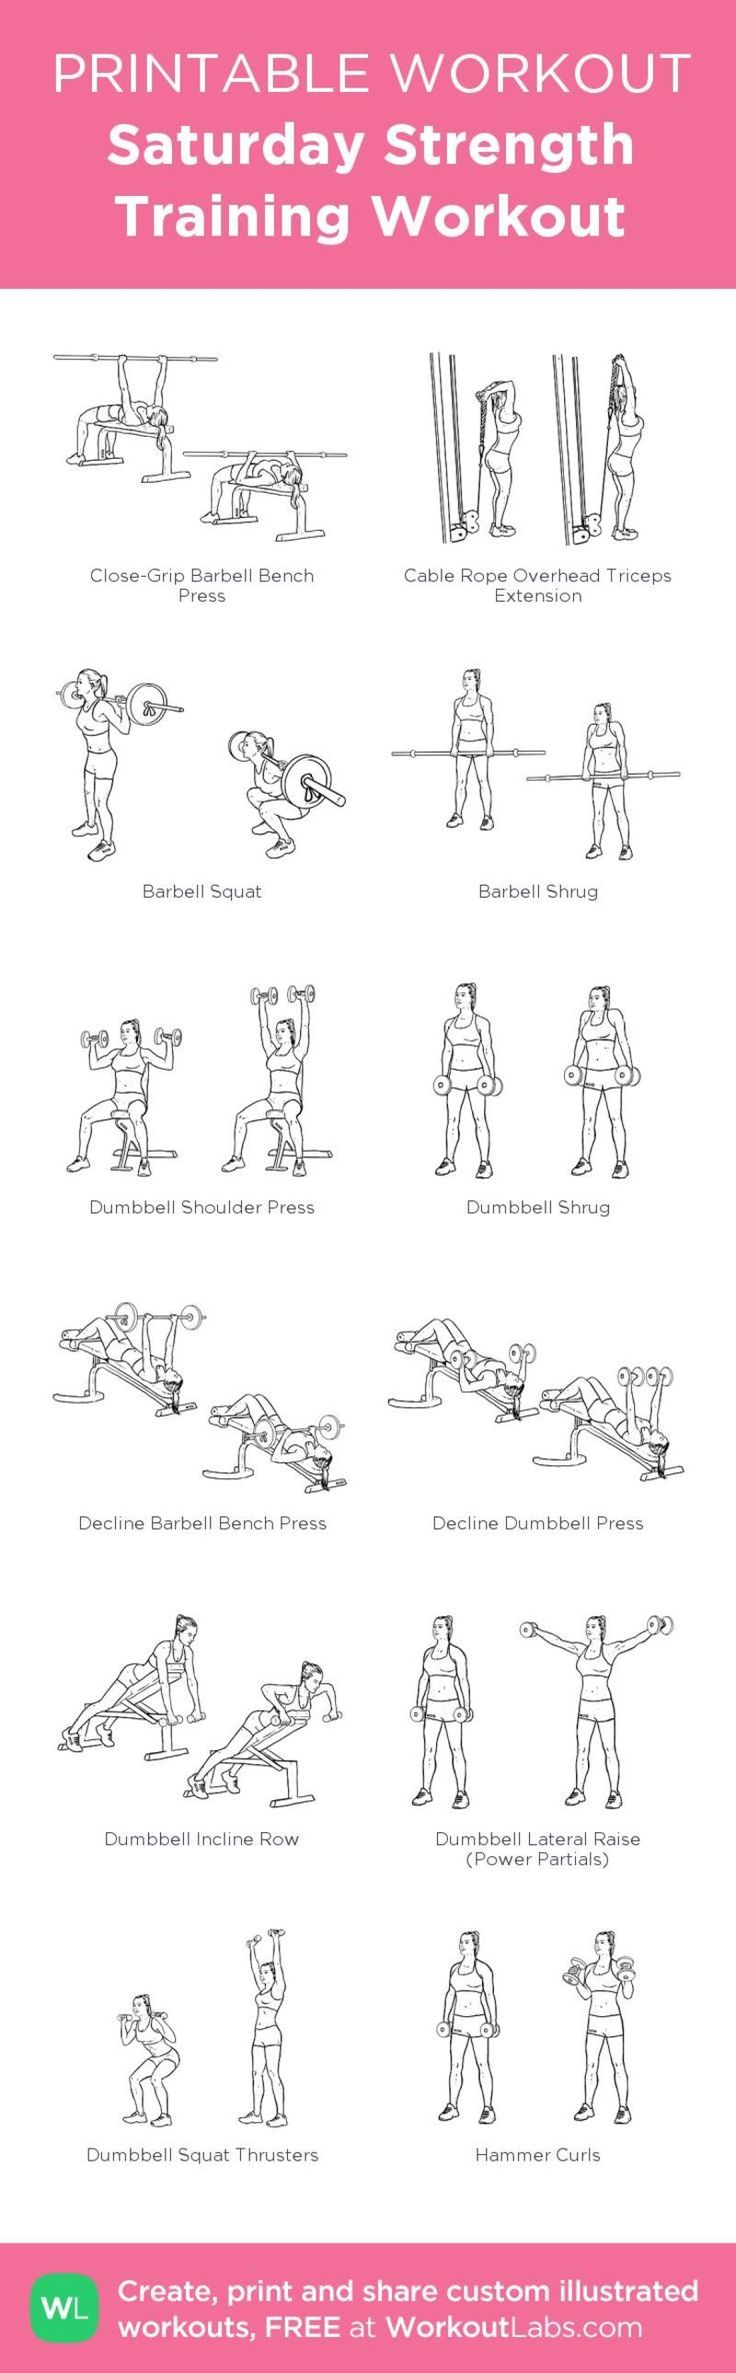 Saturday Strength Training Workout: my custom printable workout by @WorkoutLabs …